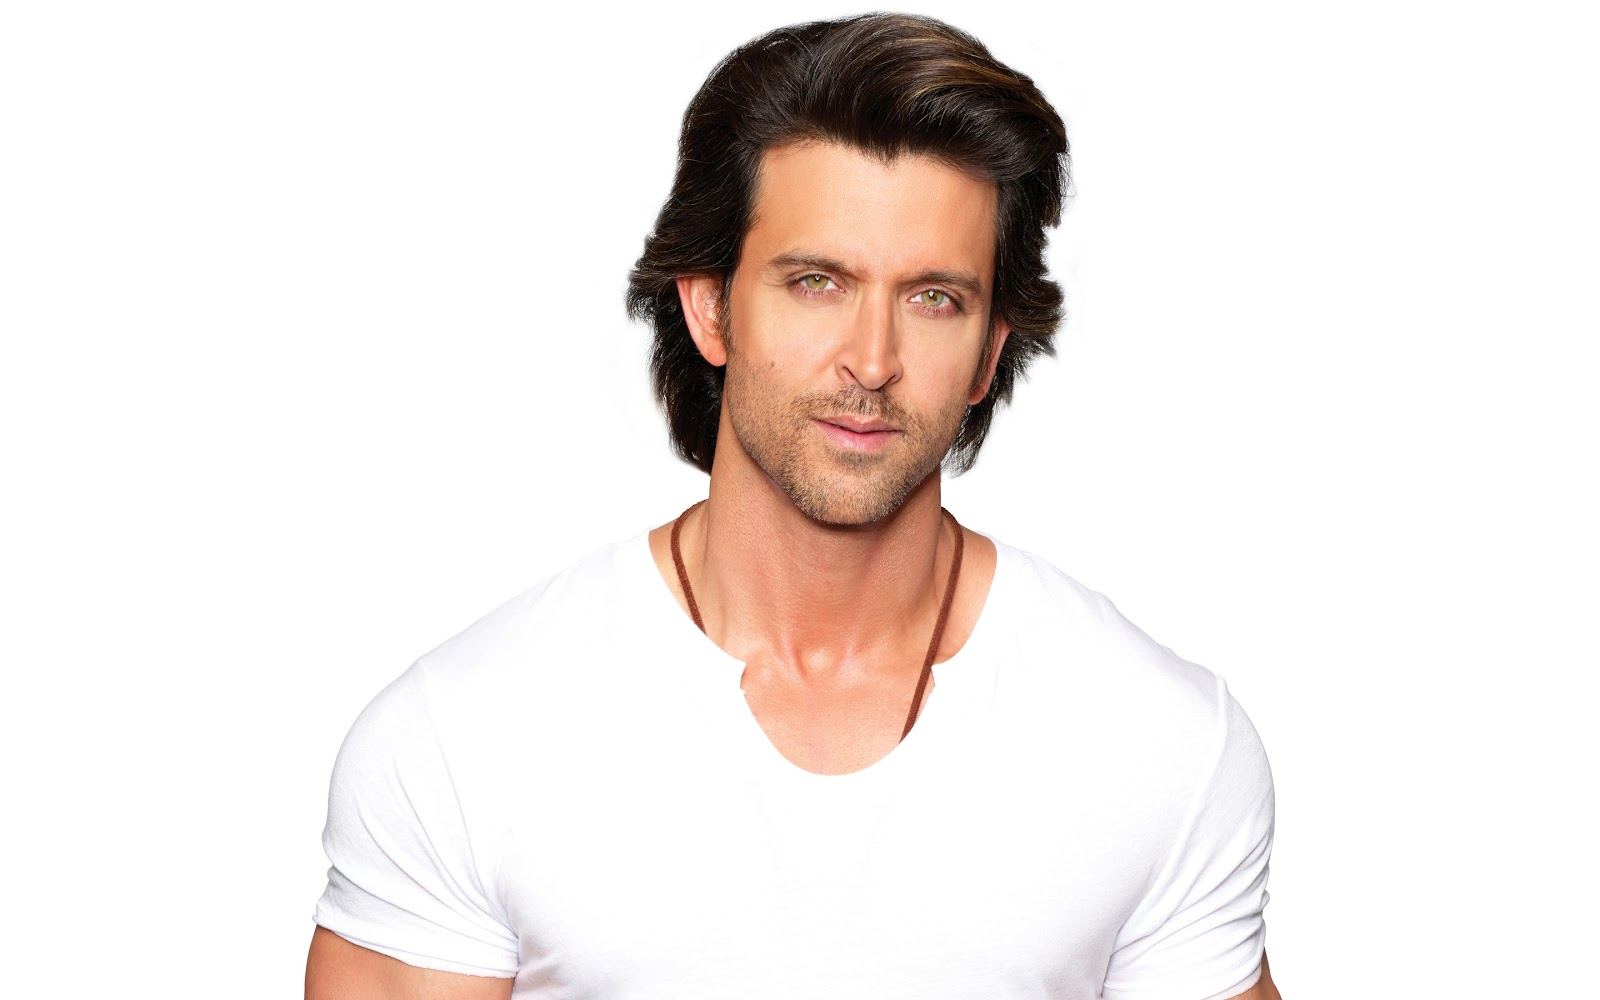 Bollywood Actors Walpaper In 2080p: Hrithik Roshan High Definition Wide Screen 1080p HD